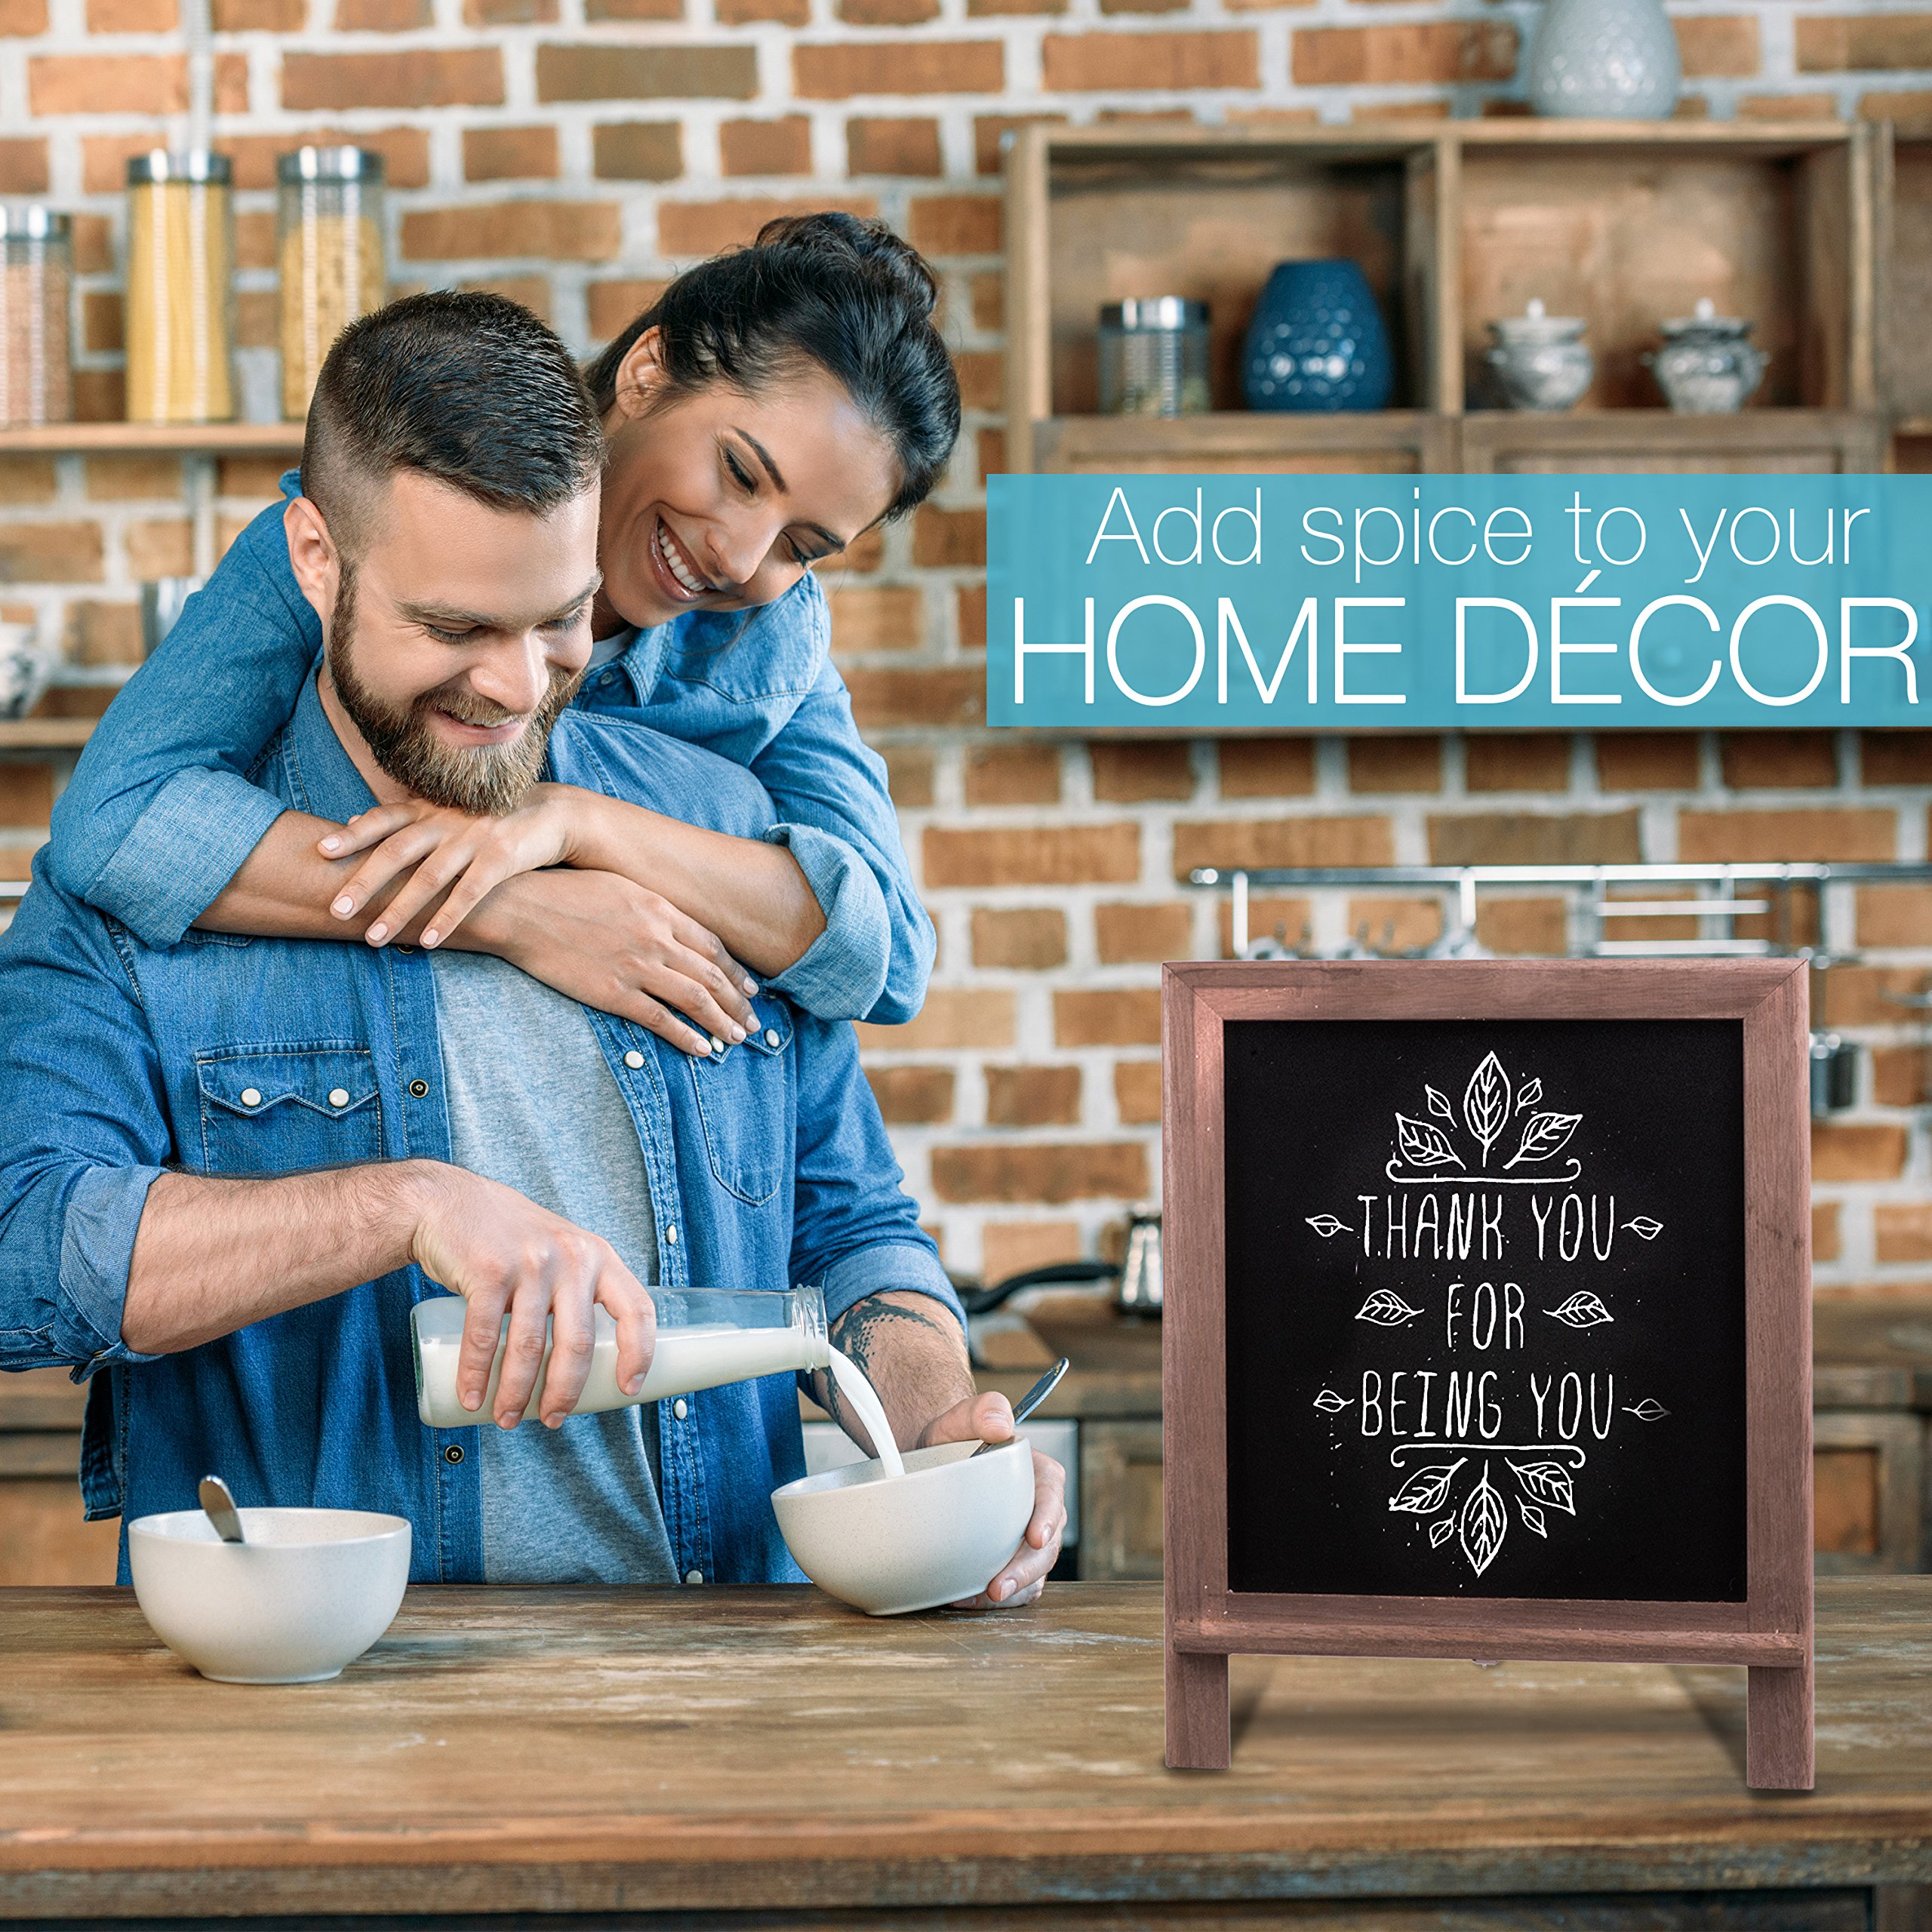 Premium Wood Framed Rustic Standing Chalkboard 12 x 16. Non-Porous Vinyl Surface. For Home, Bars, Restaurants and Weddings - for the Vintage Look! FREE BONUS: 24 chalks + Eraser + Storage Bag by KidisPro (Image #6)